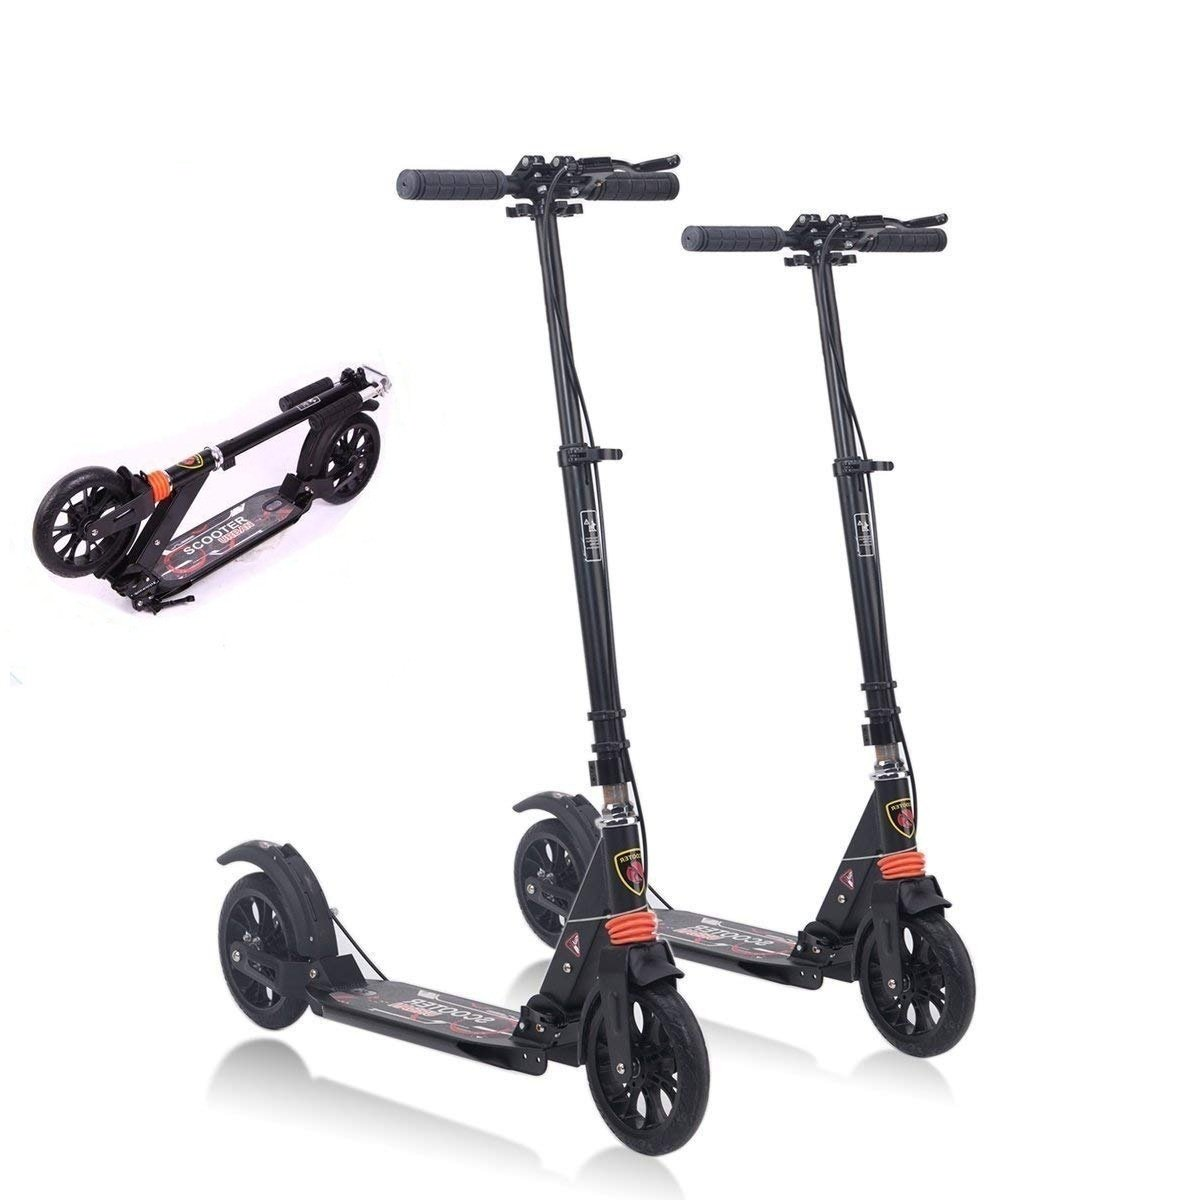 MONODEAL Adjustable Height Scooter, 2 Wheel Teen/Adult Kick Scooter with Aluminum Alloy Frame, Front & Rear Spring Shock-Absorbing System, Easy-Folding, Adjustable T Handlebar - 220lb Weight Limit